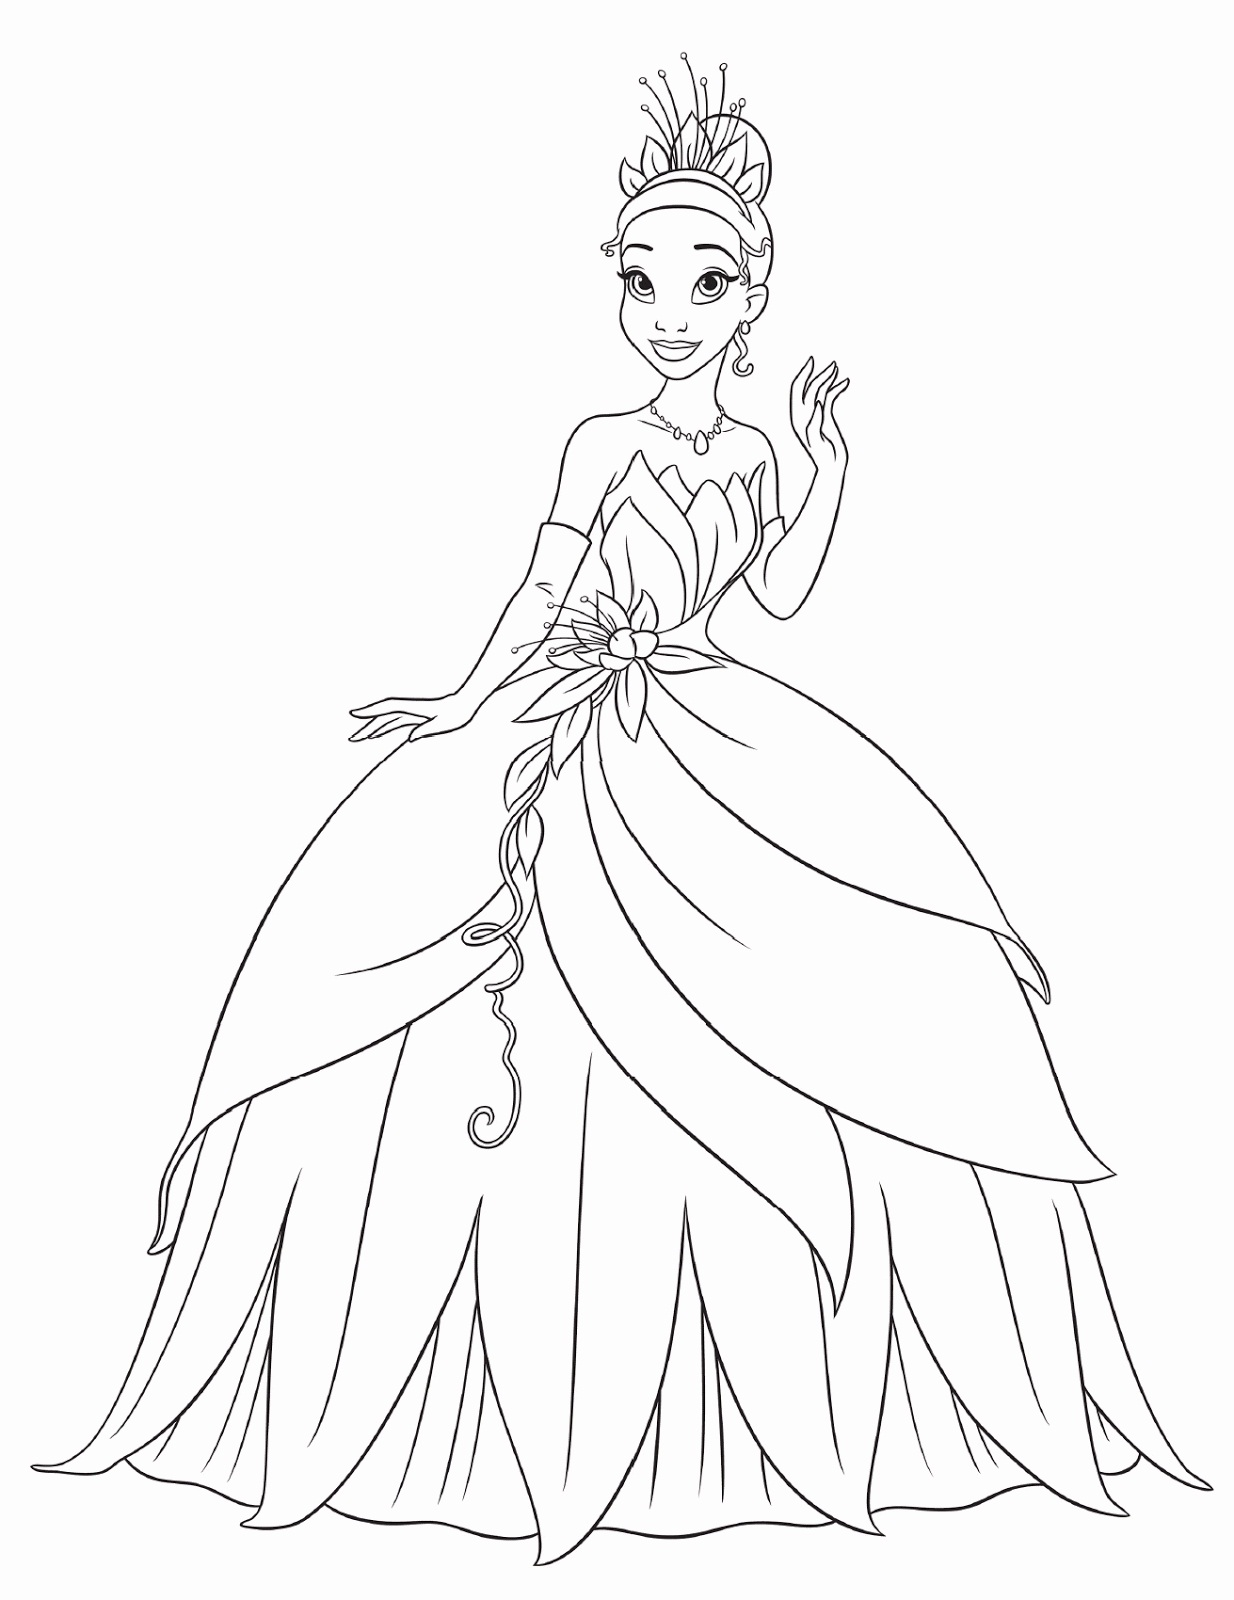 Free Printable Princess Tiana Coloring Pages For Kids Princess Coloring Book Pages